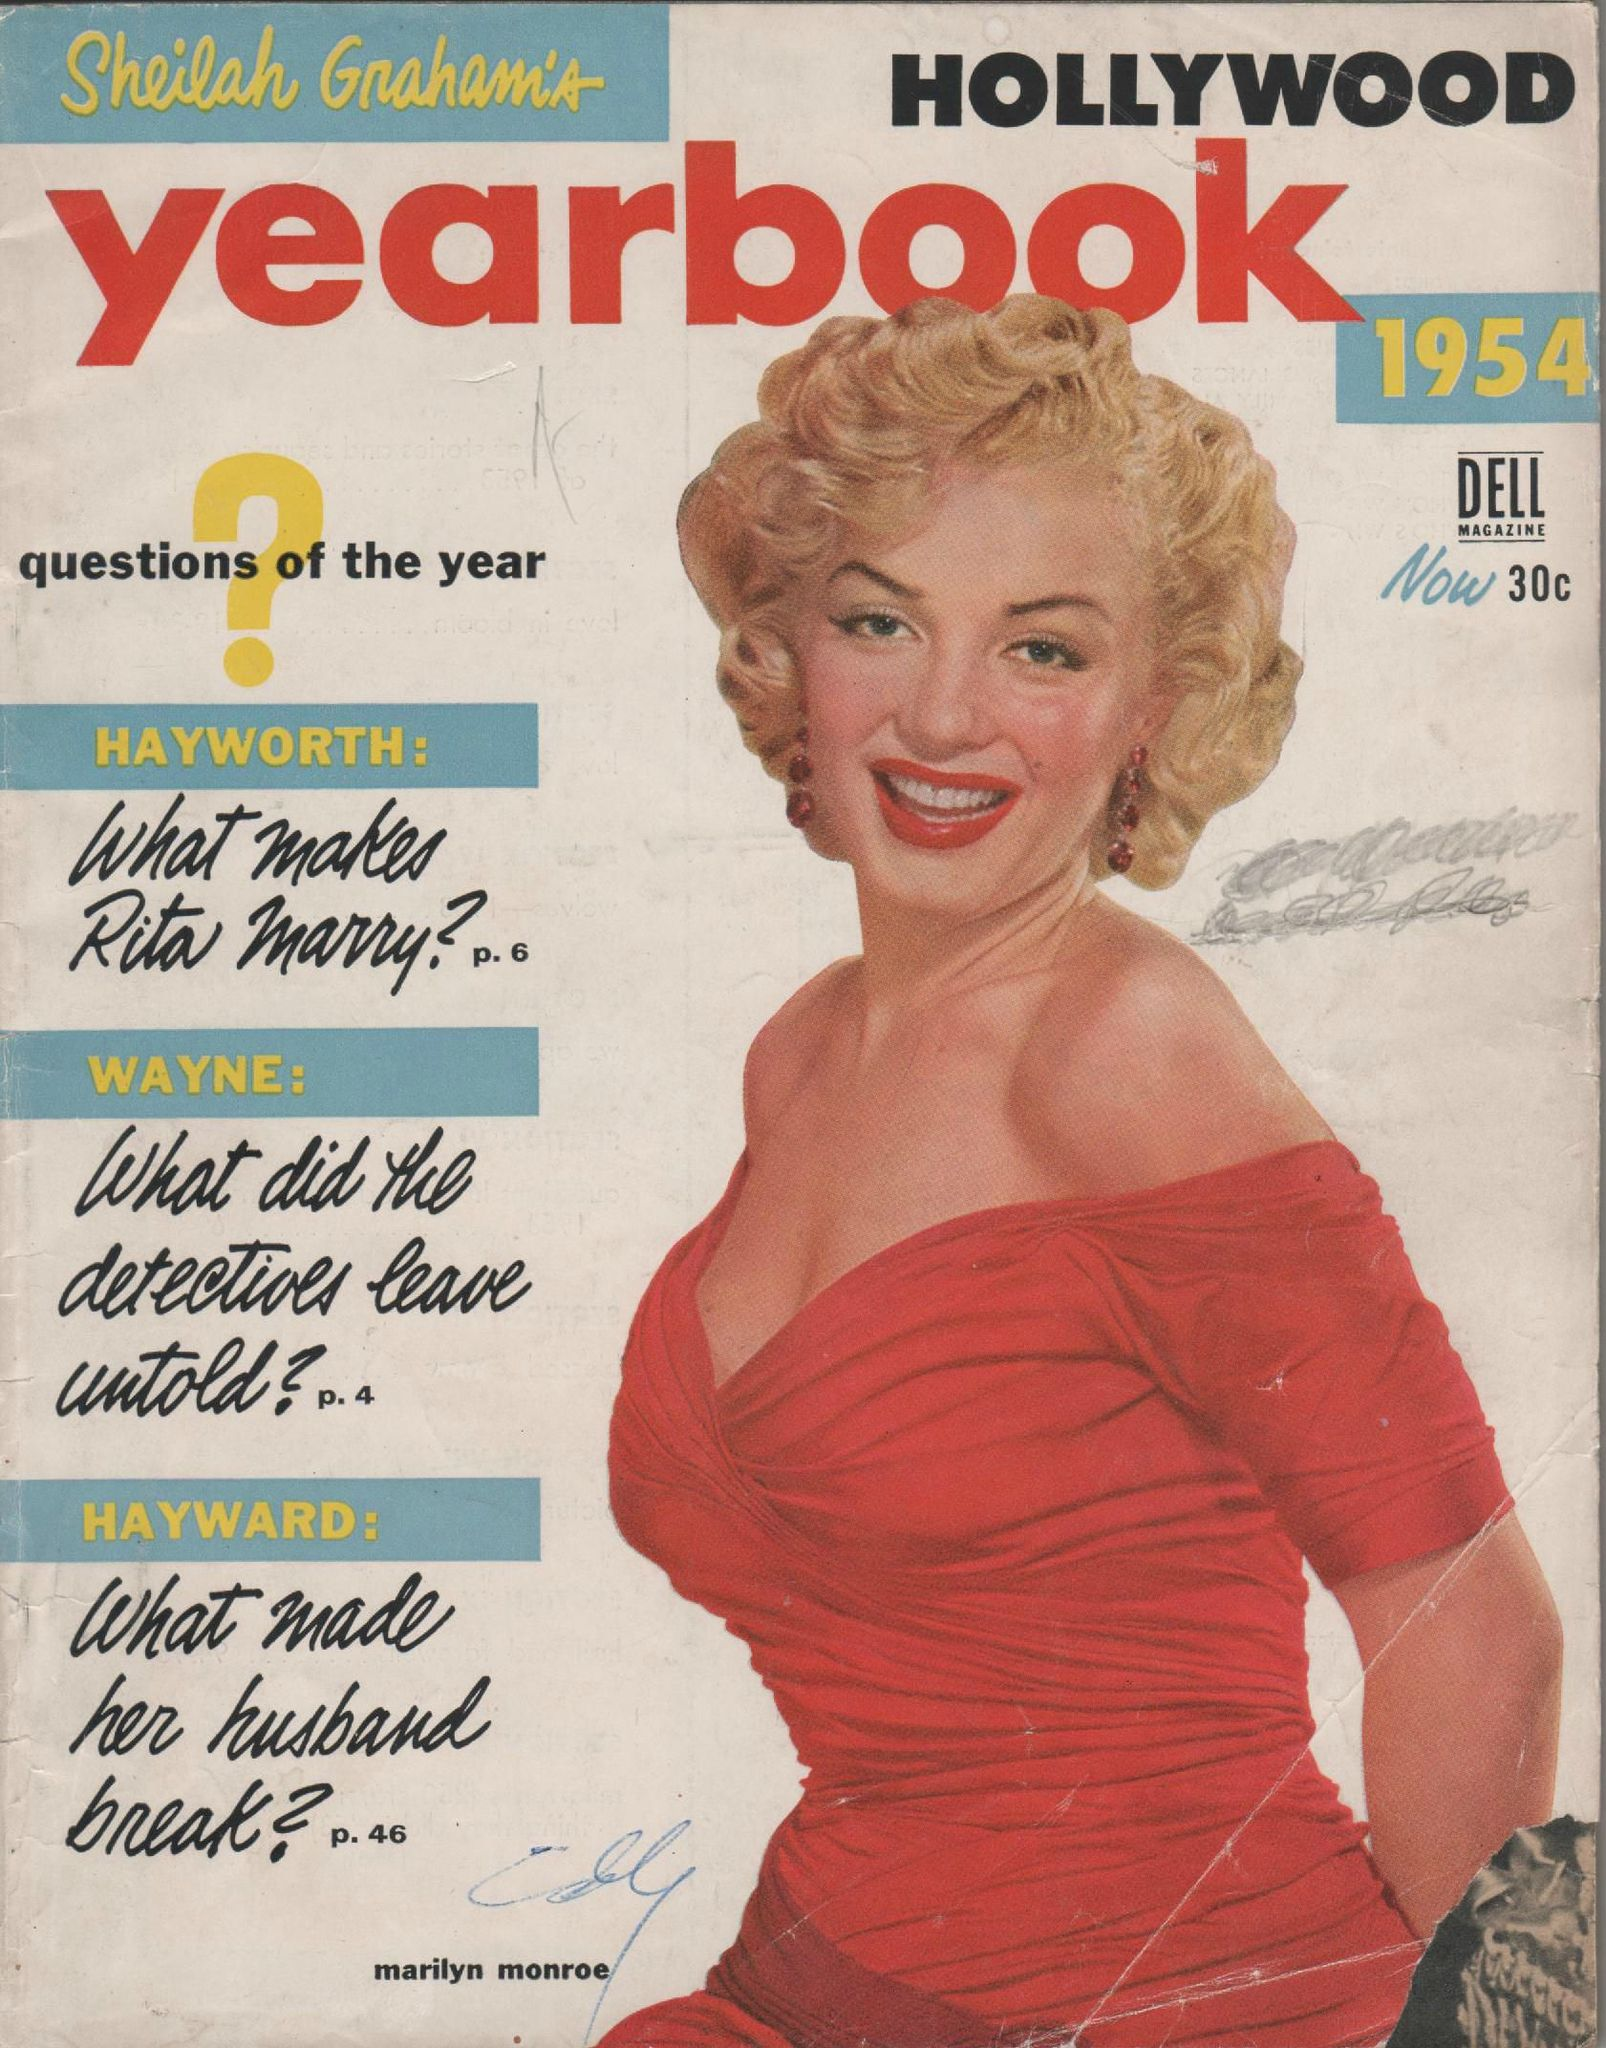 Hollywood yearbook (usa) 1954